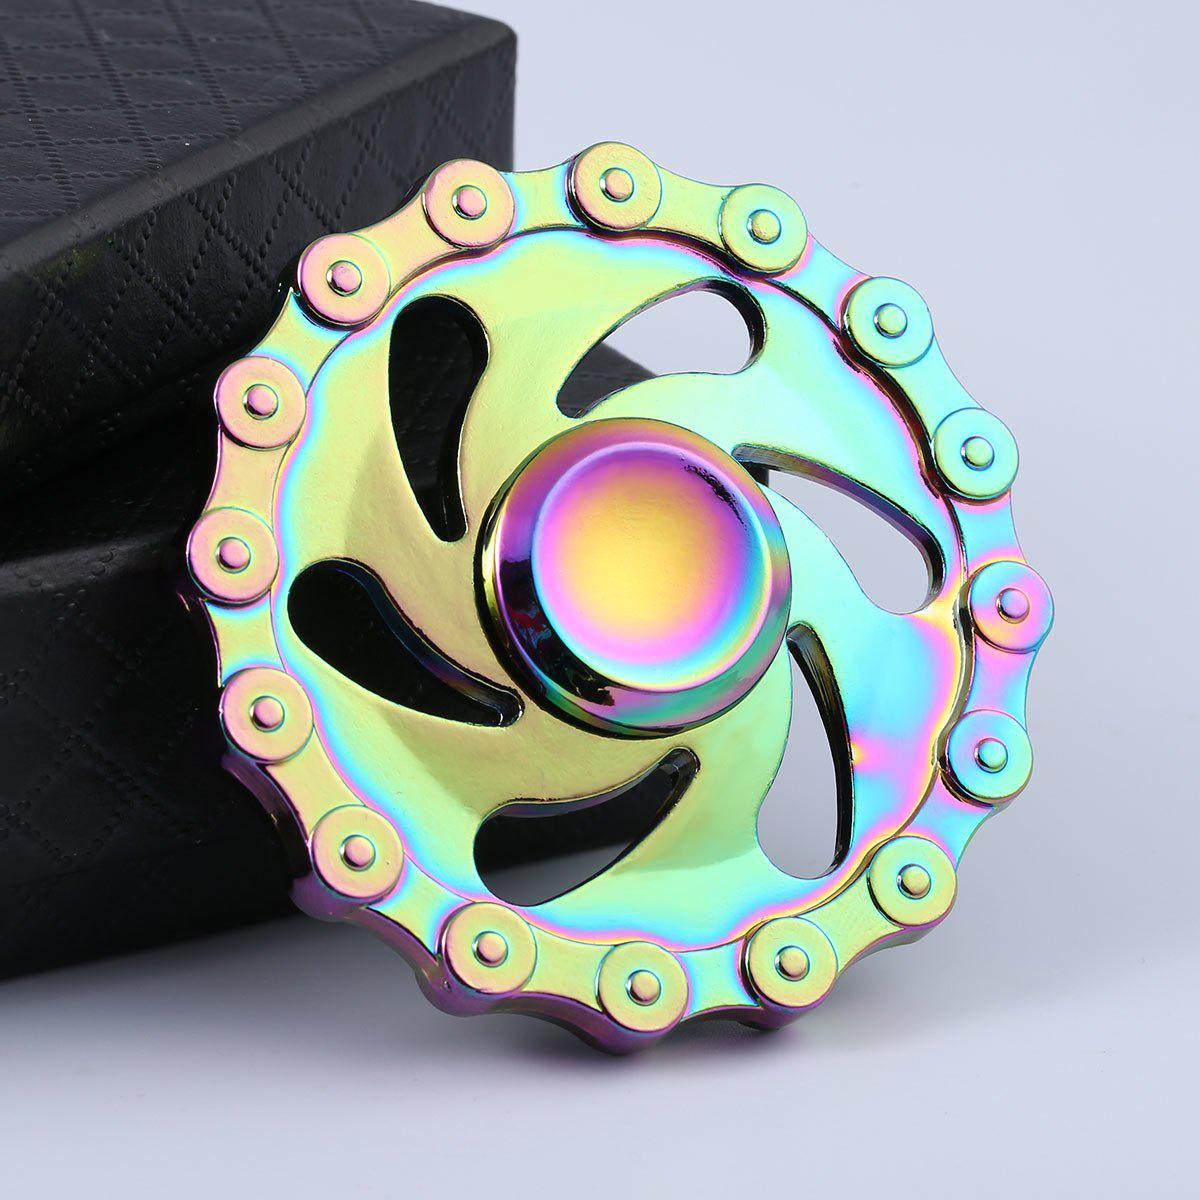 Anti Stress Rainbow Chain Wheel EDC Hand Spinner game darts legering metalen wapen model draaibaar darts cosplay props voor collectie fidget spinner hand anti stress